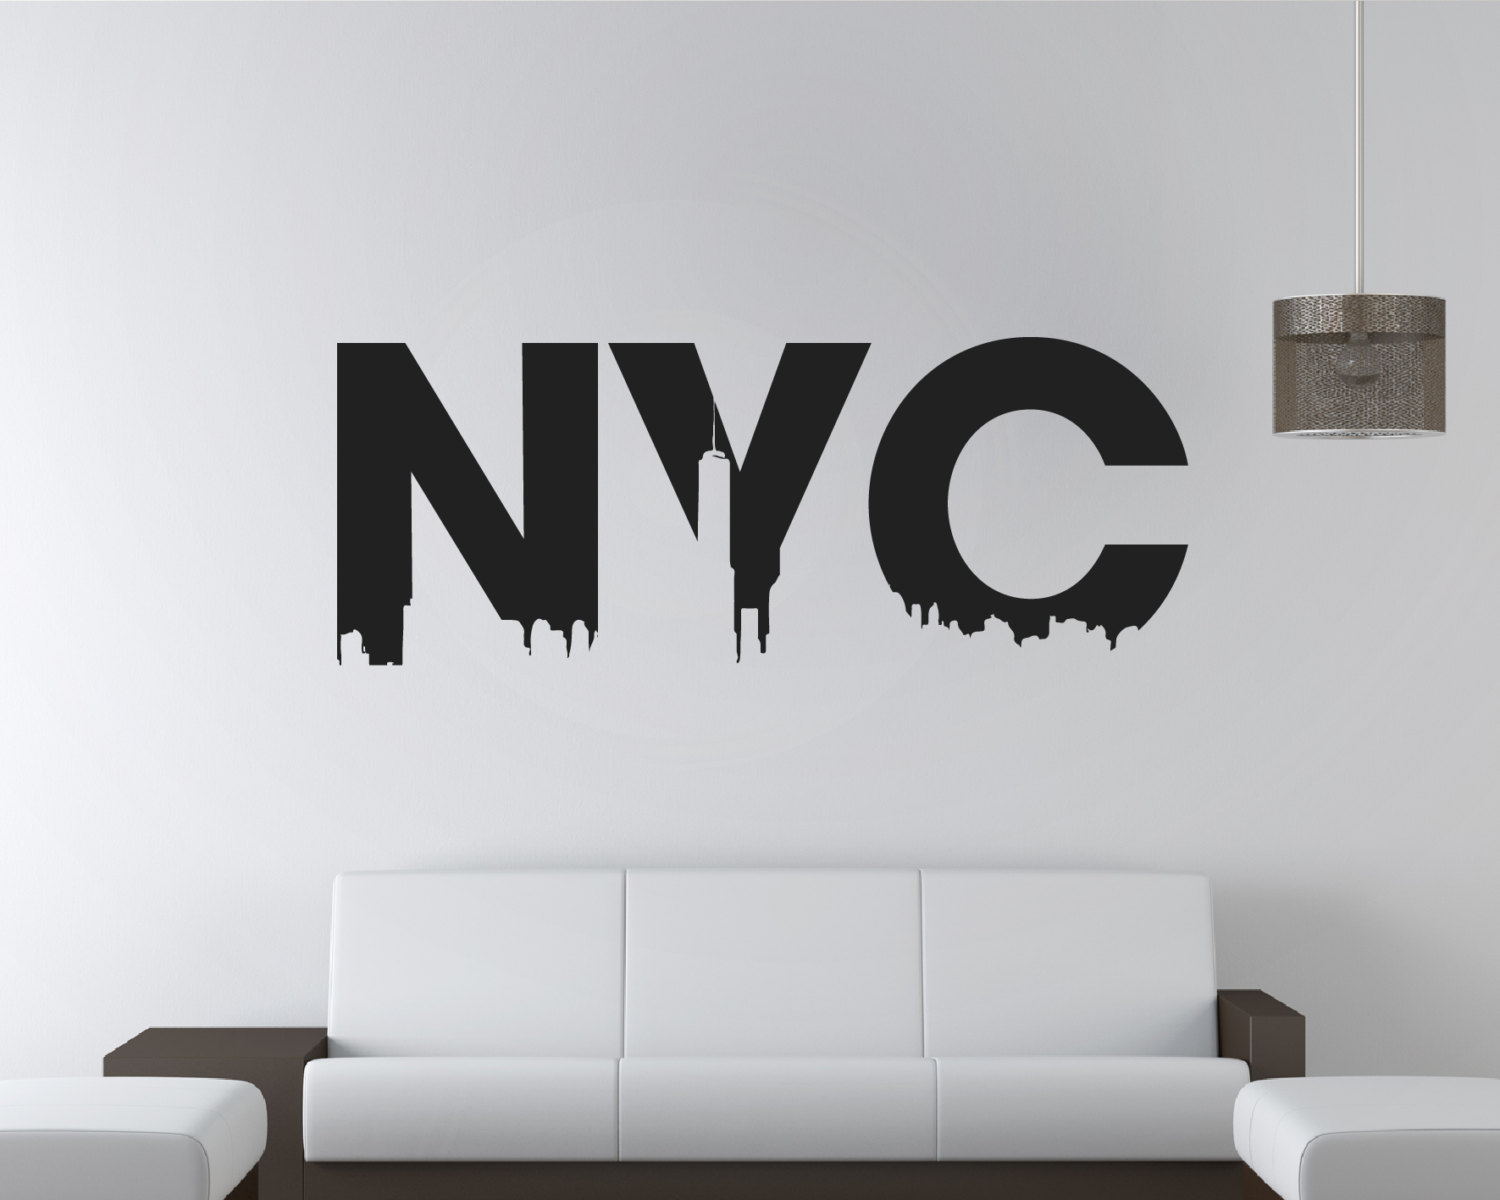 nyc wall sticker nyc stickers nyc sticker new york city wall art new york wall mural. Black Bedroom Furniture Sets. Home Design Ideas